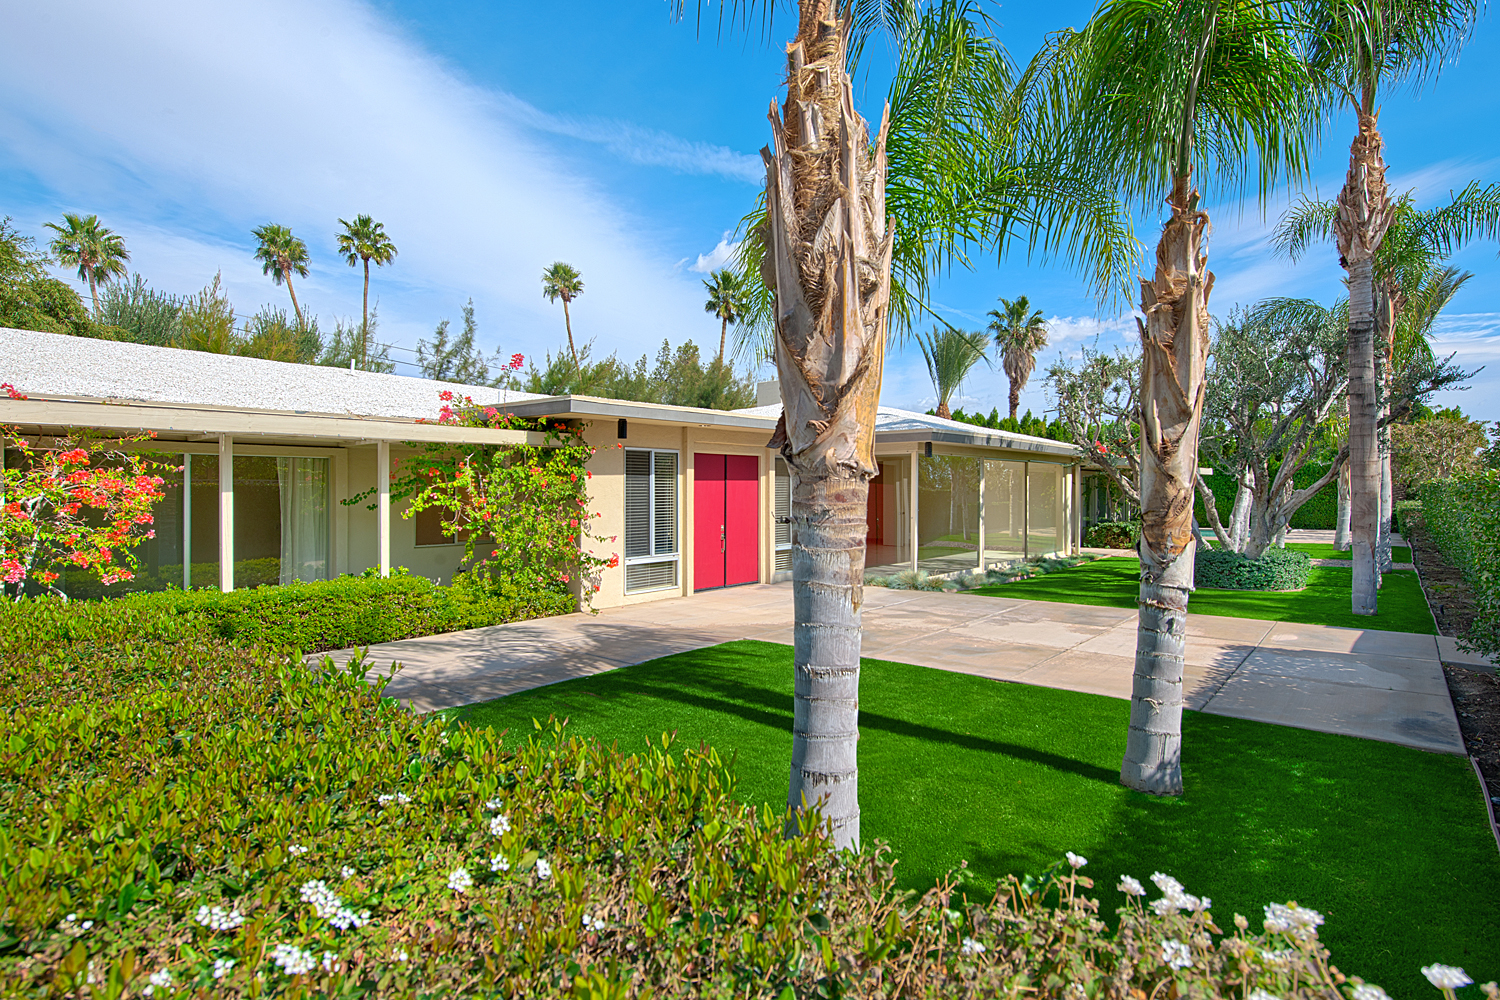 Palm springs most expensive homes for sale right now for Property in palm springs